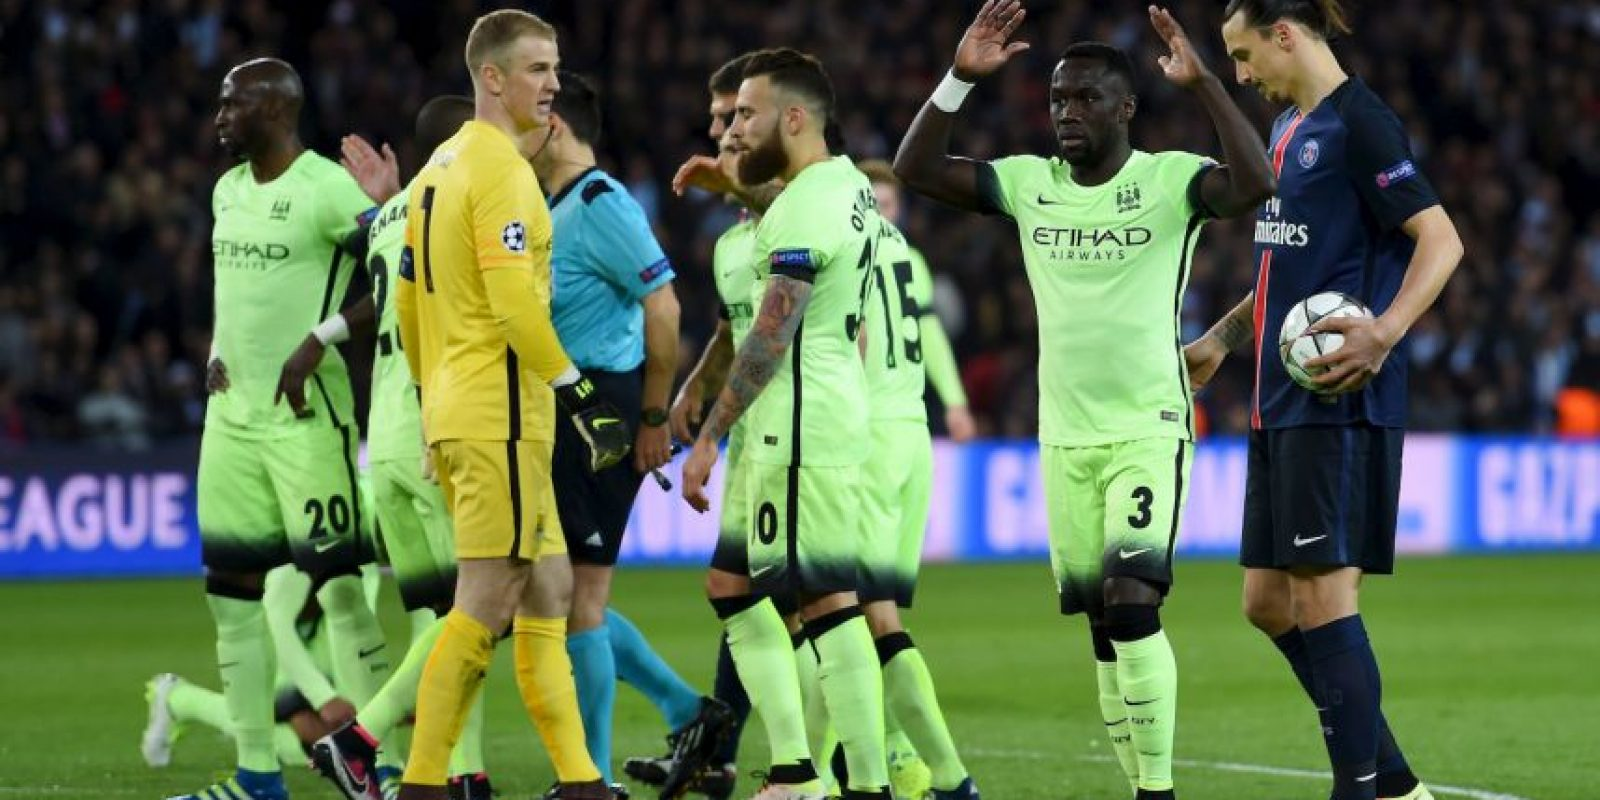 Manchester City vs. PSG Foto: Getty Images